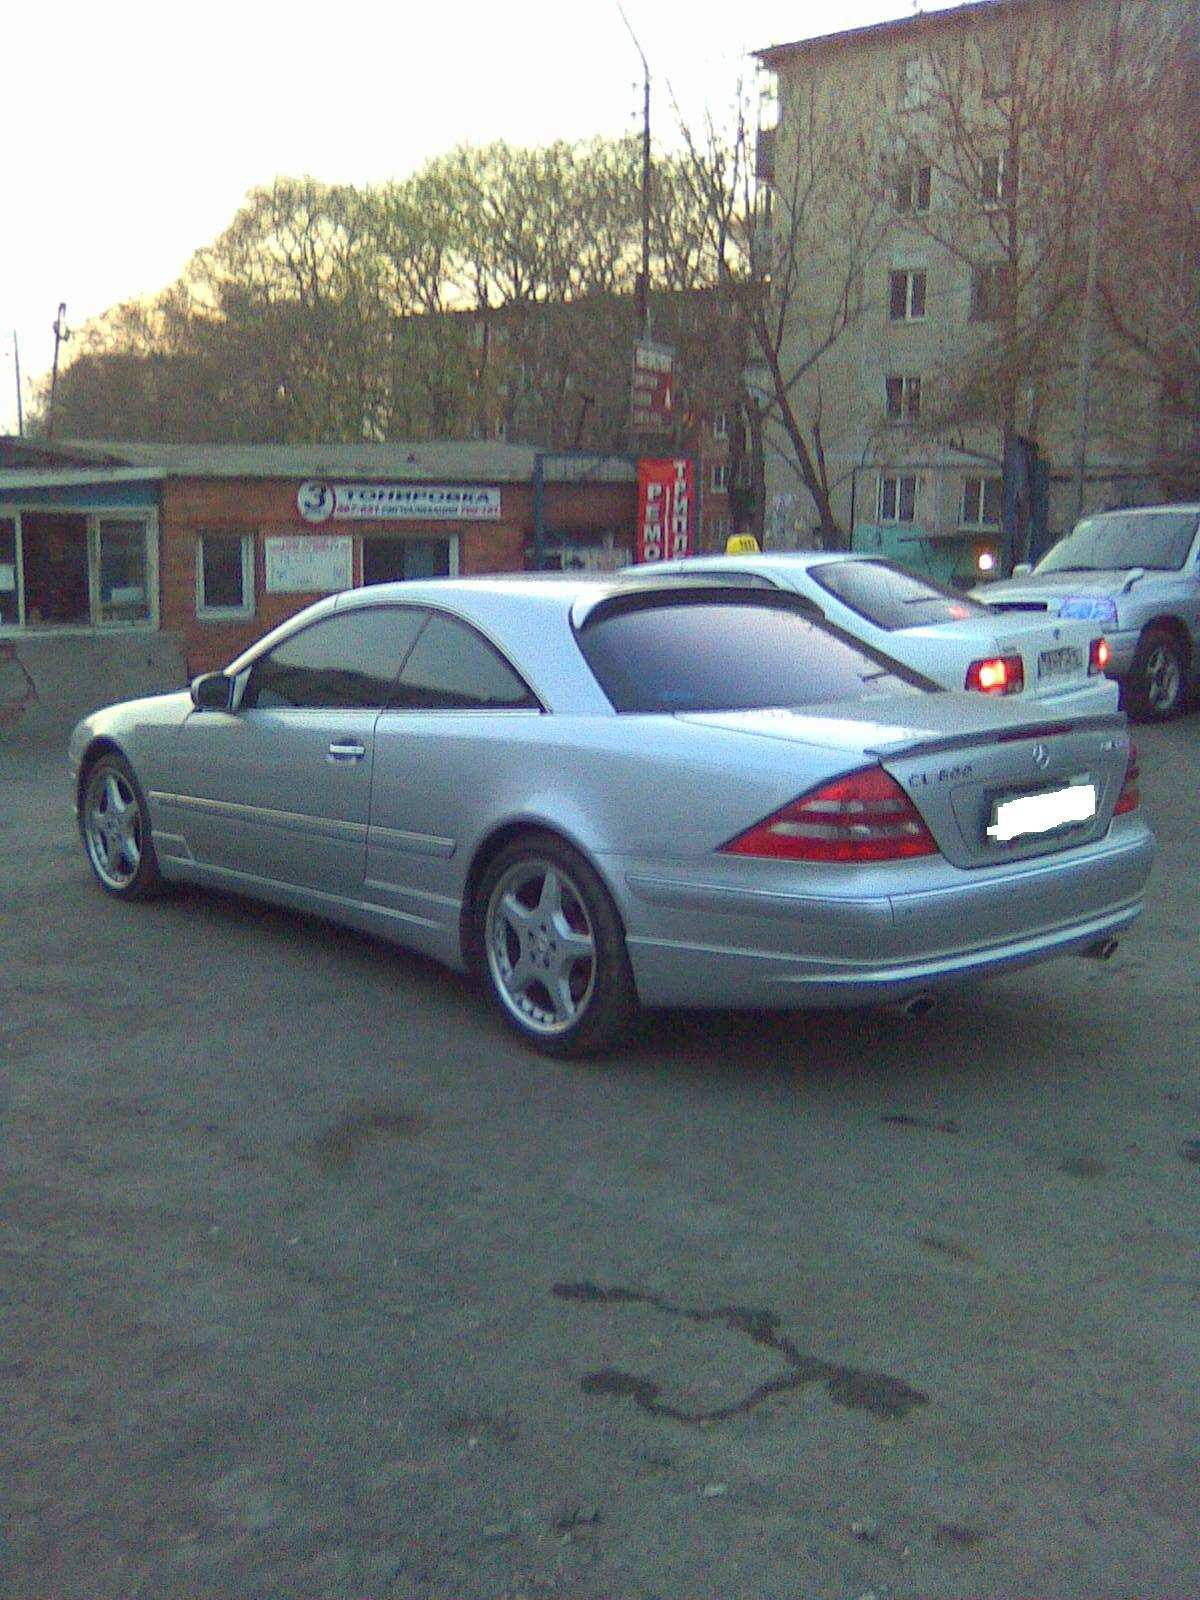 2001 mercedes benz cl class for sale 6 0 gasoline fr or for 2001 mercedes benz cl500 for sale